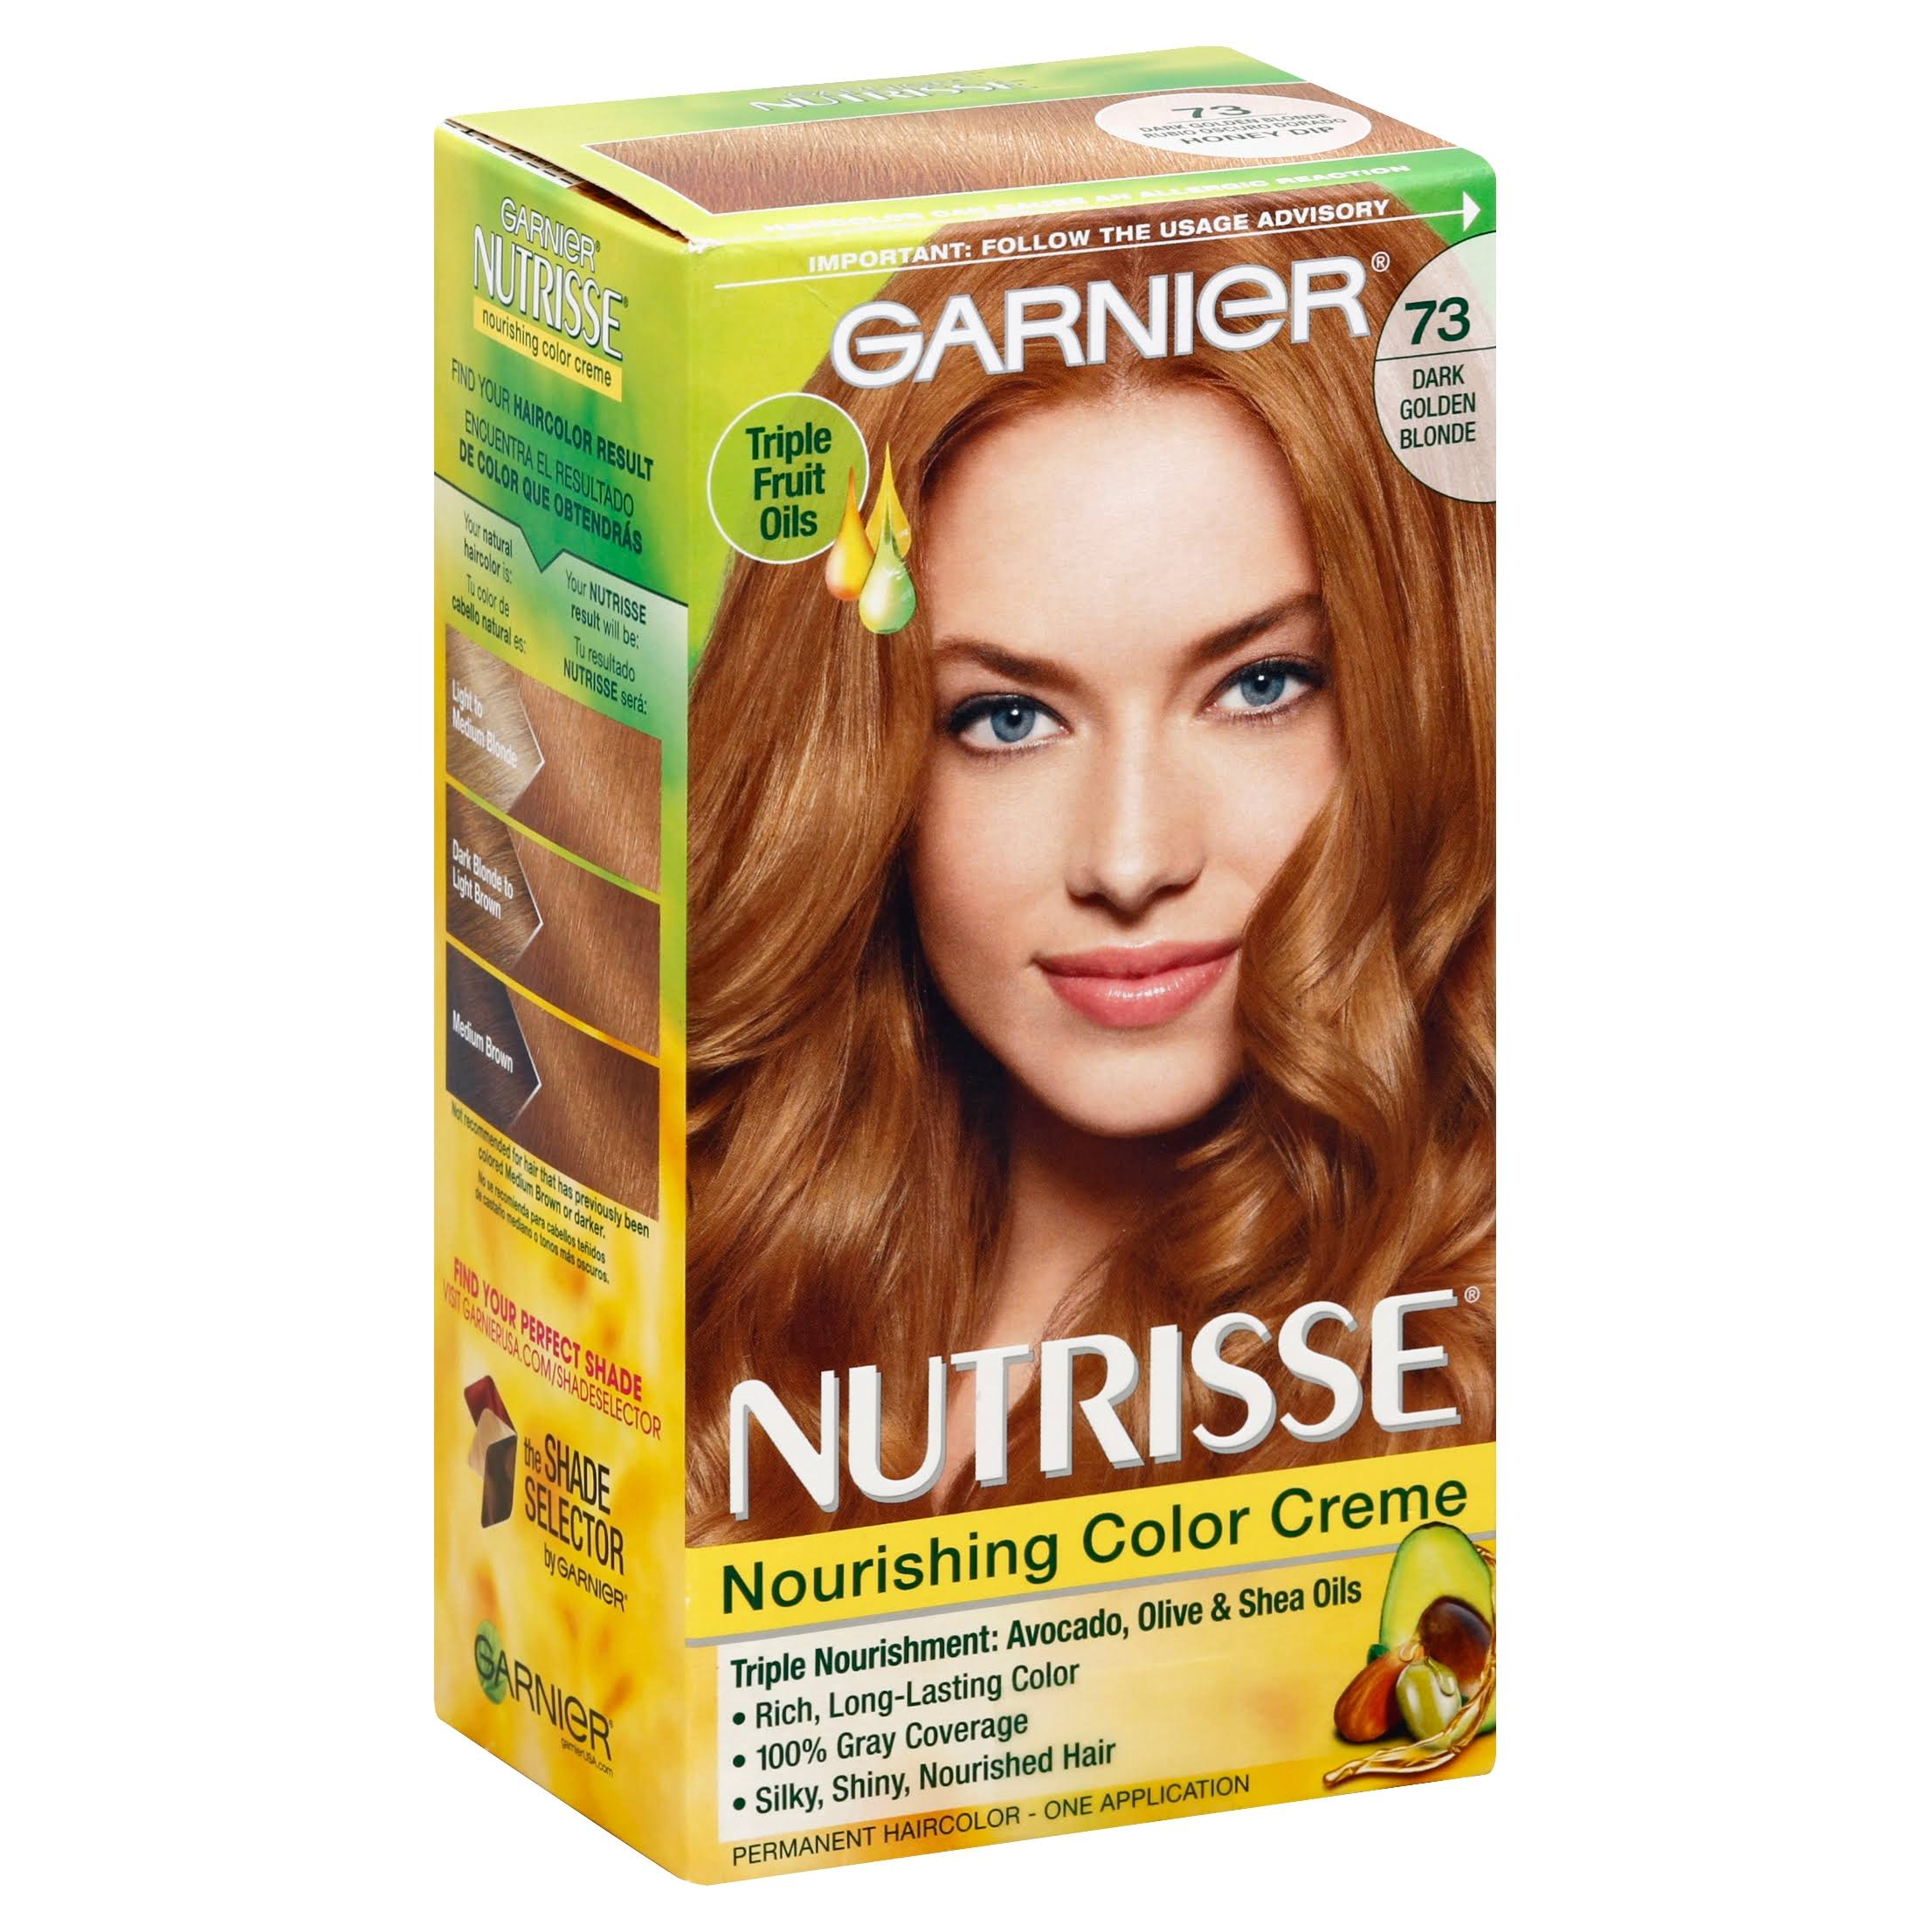 Garnier Nutrisse 73 Dark Golden Blonde Permanent Haircolor